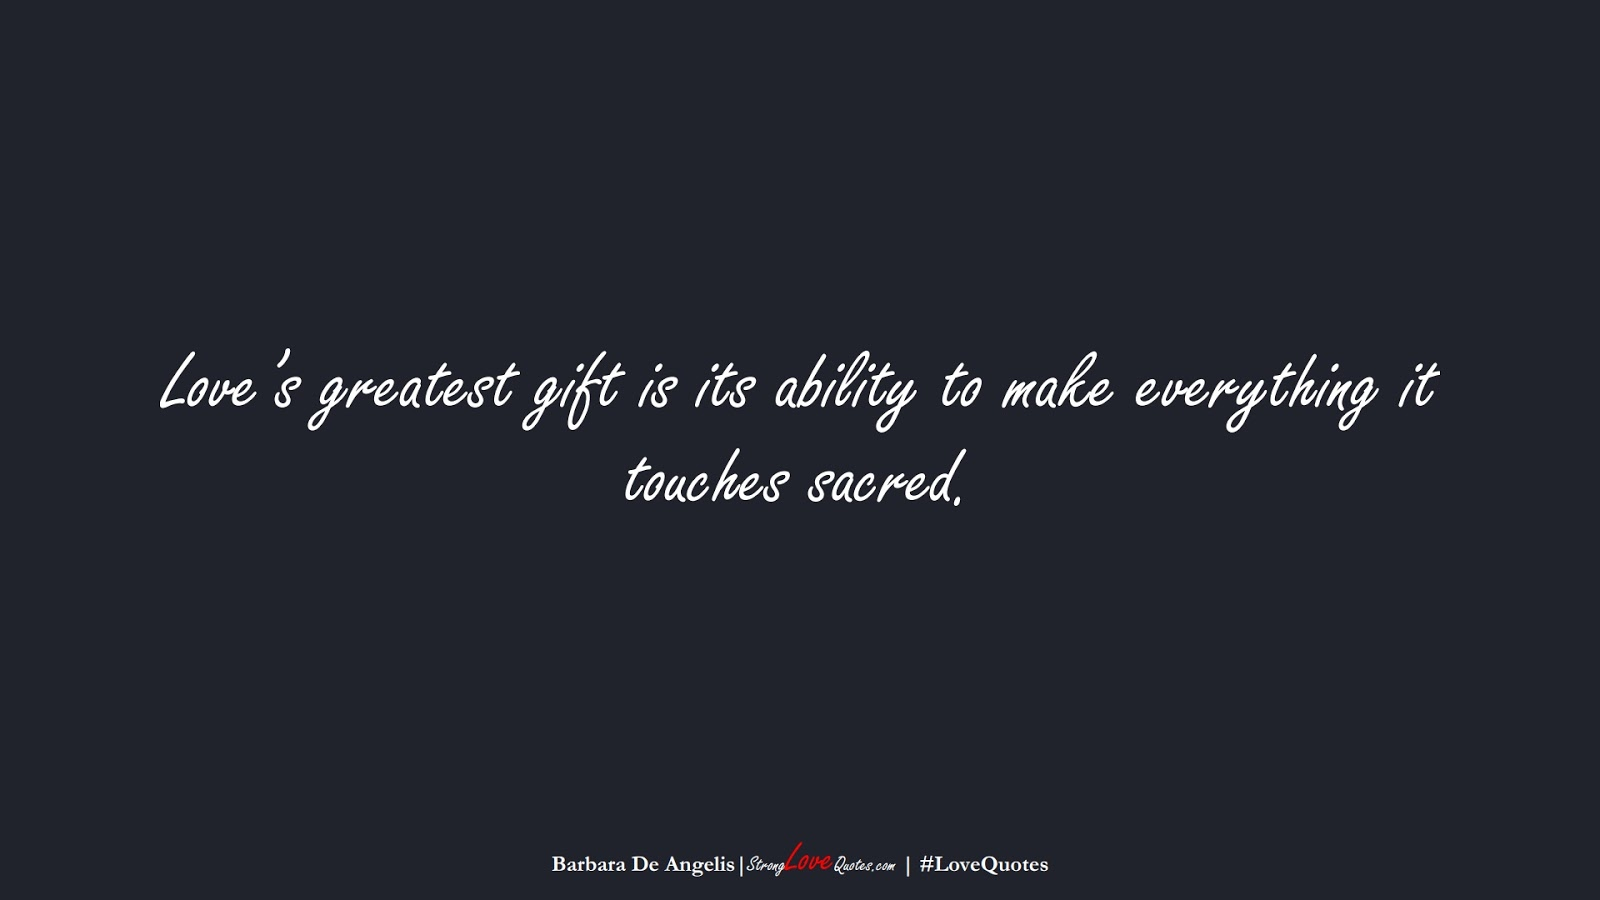 Love's greatest gift is its ability to make everything it touches sacred. (Barbara De Angelis);  #LoveQuotes